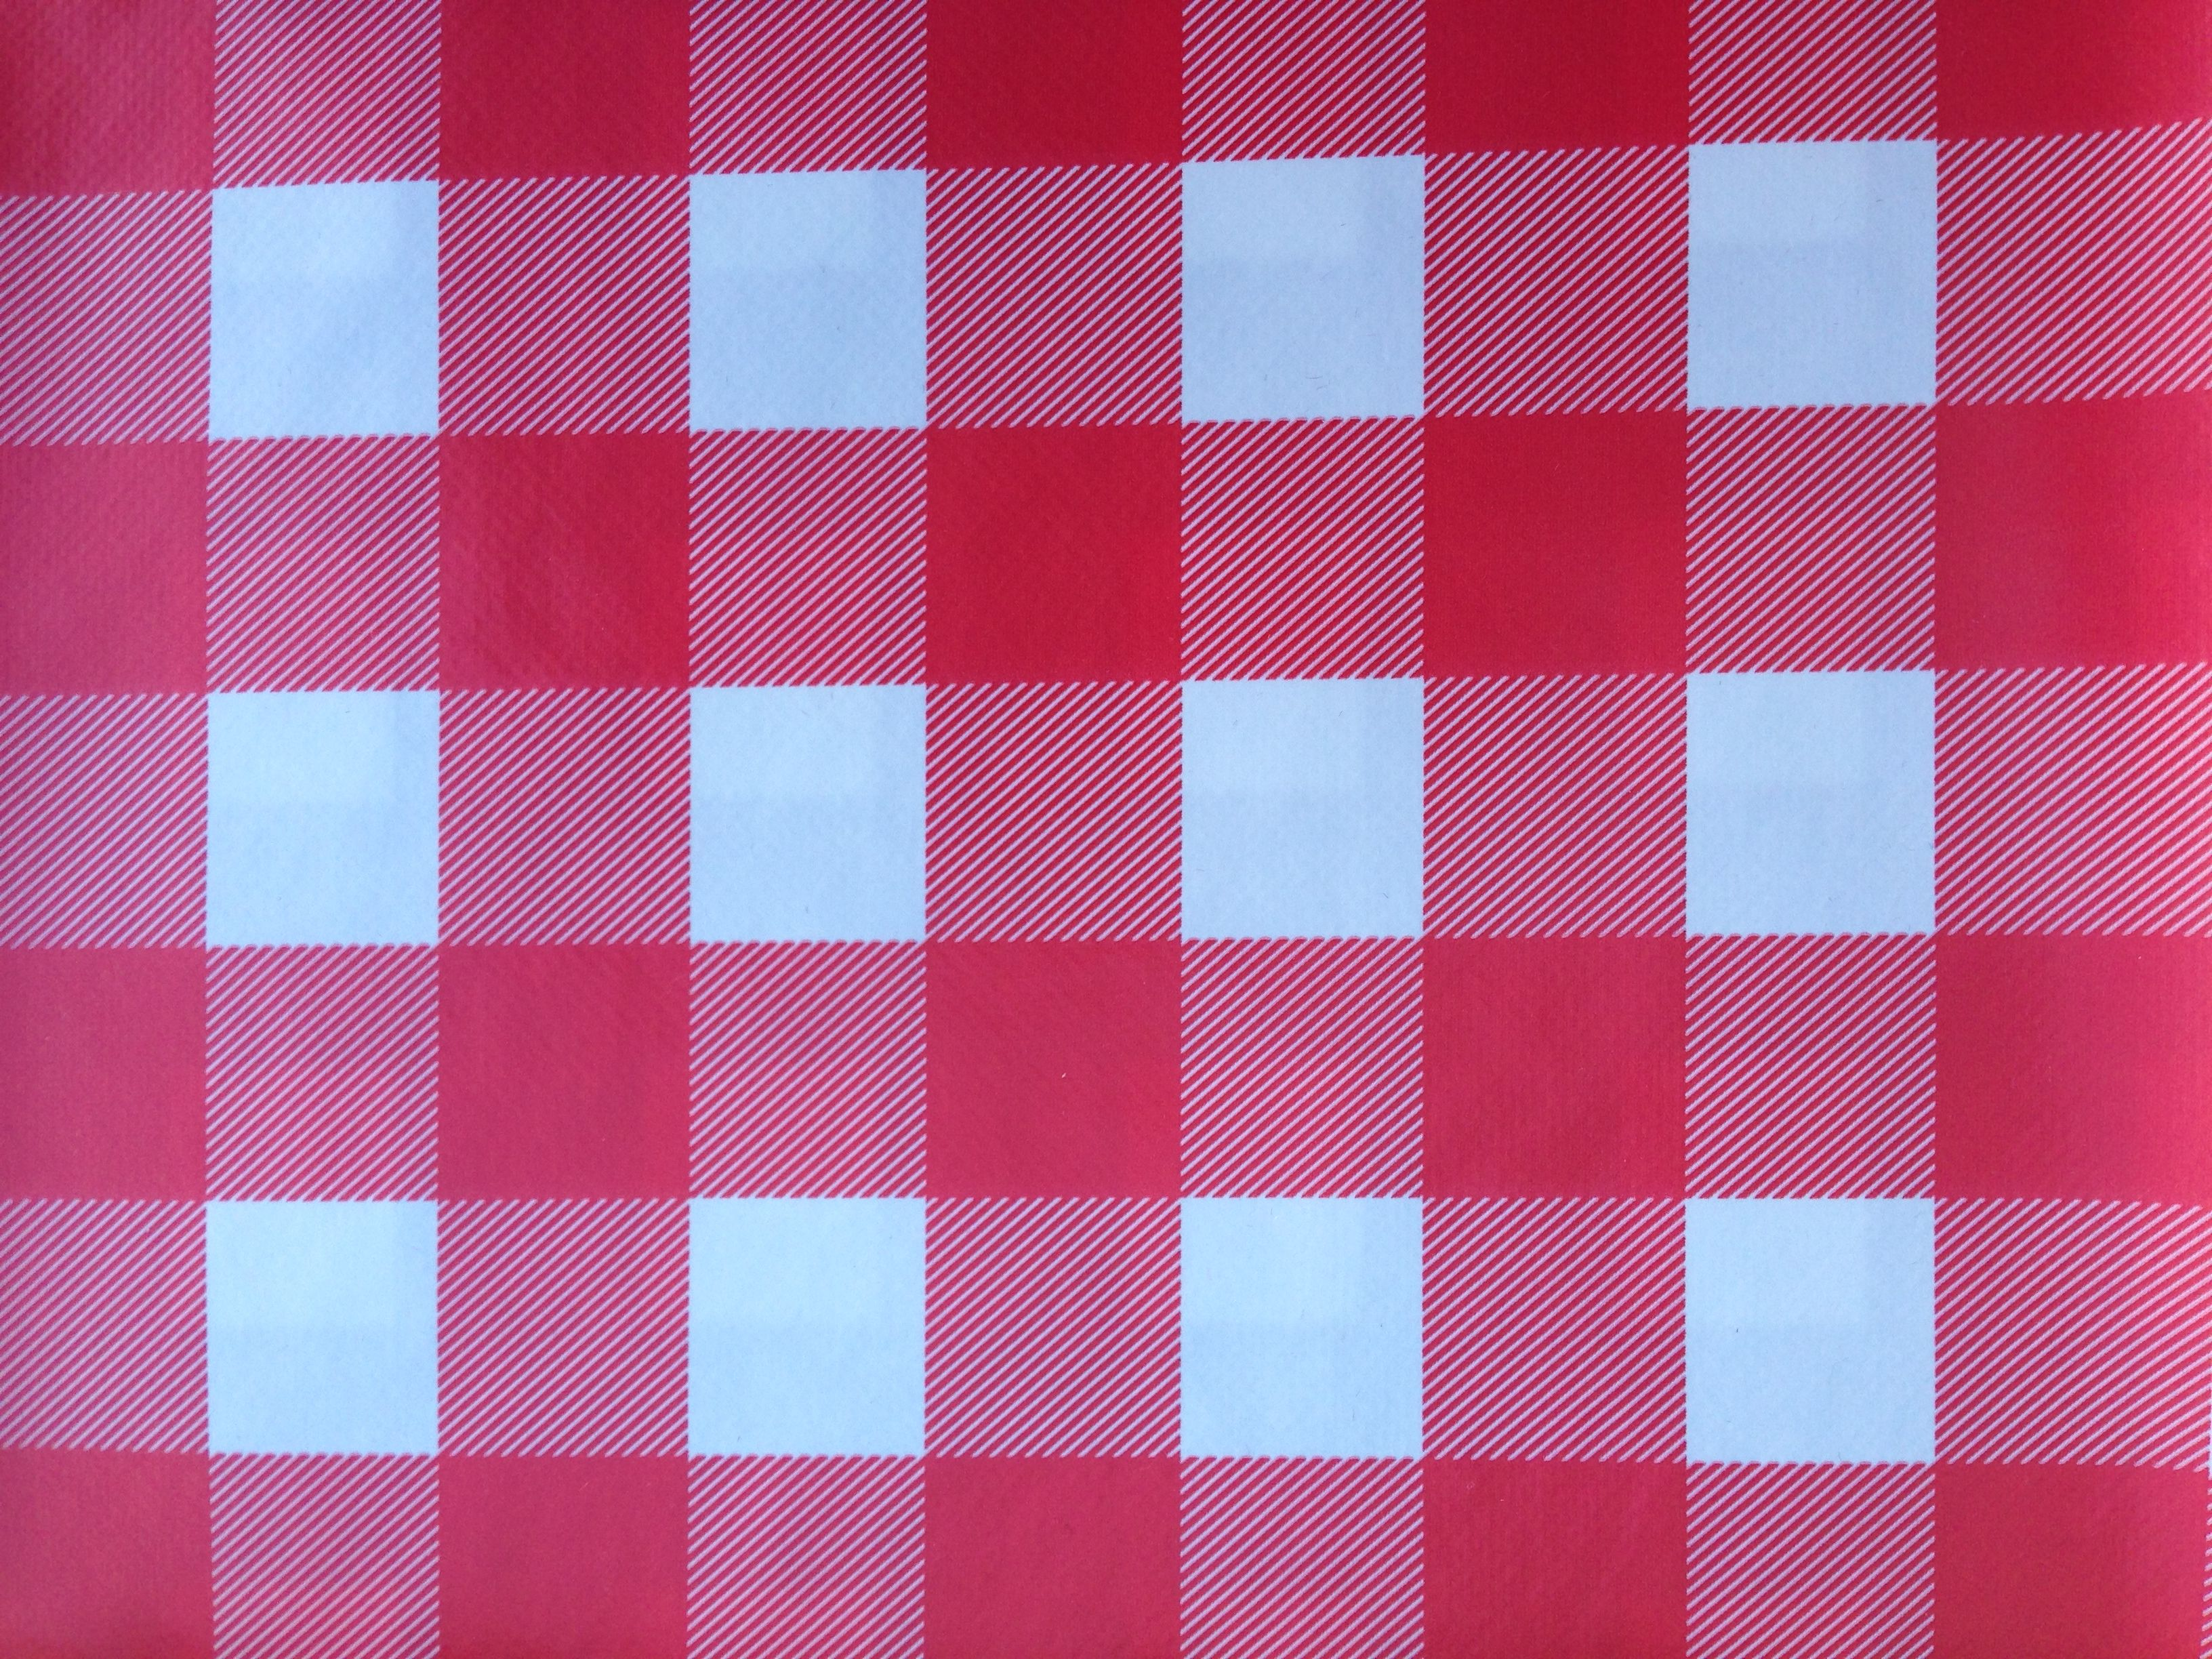 Red gingham pvc table cloth. mesas pinterest red gingham